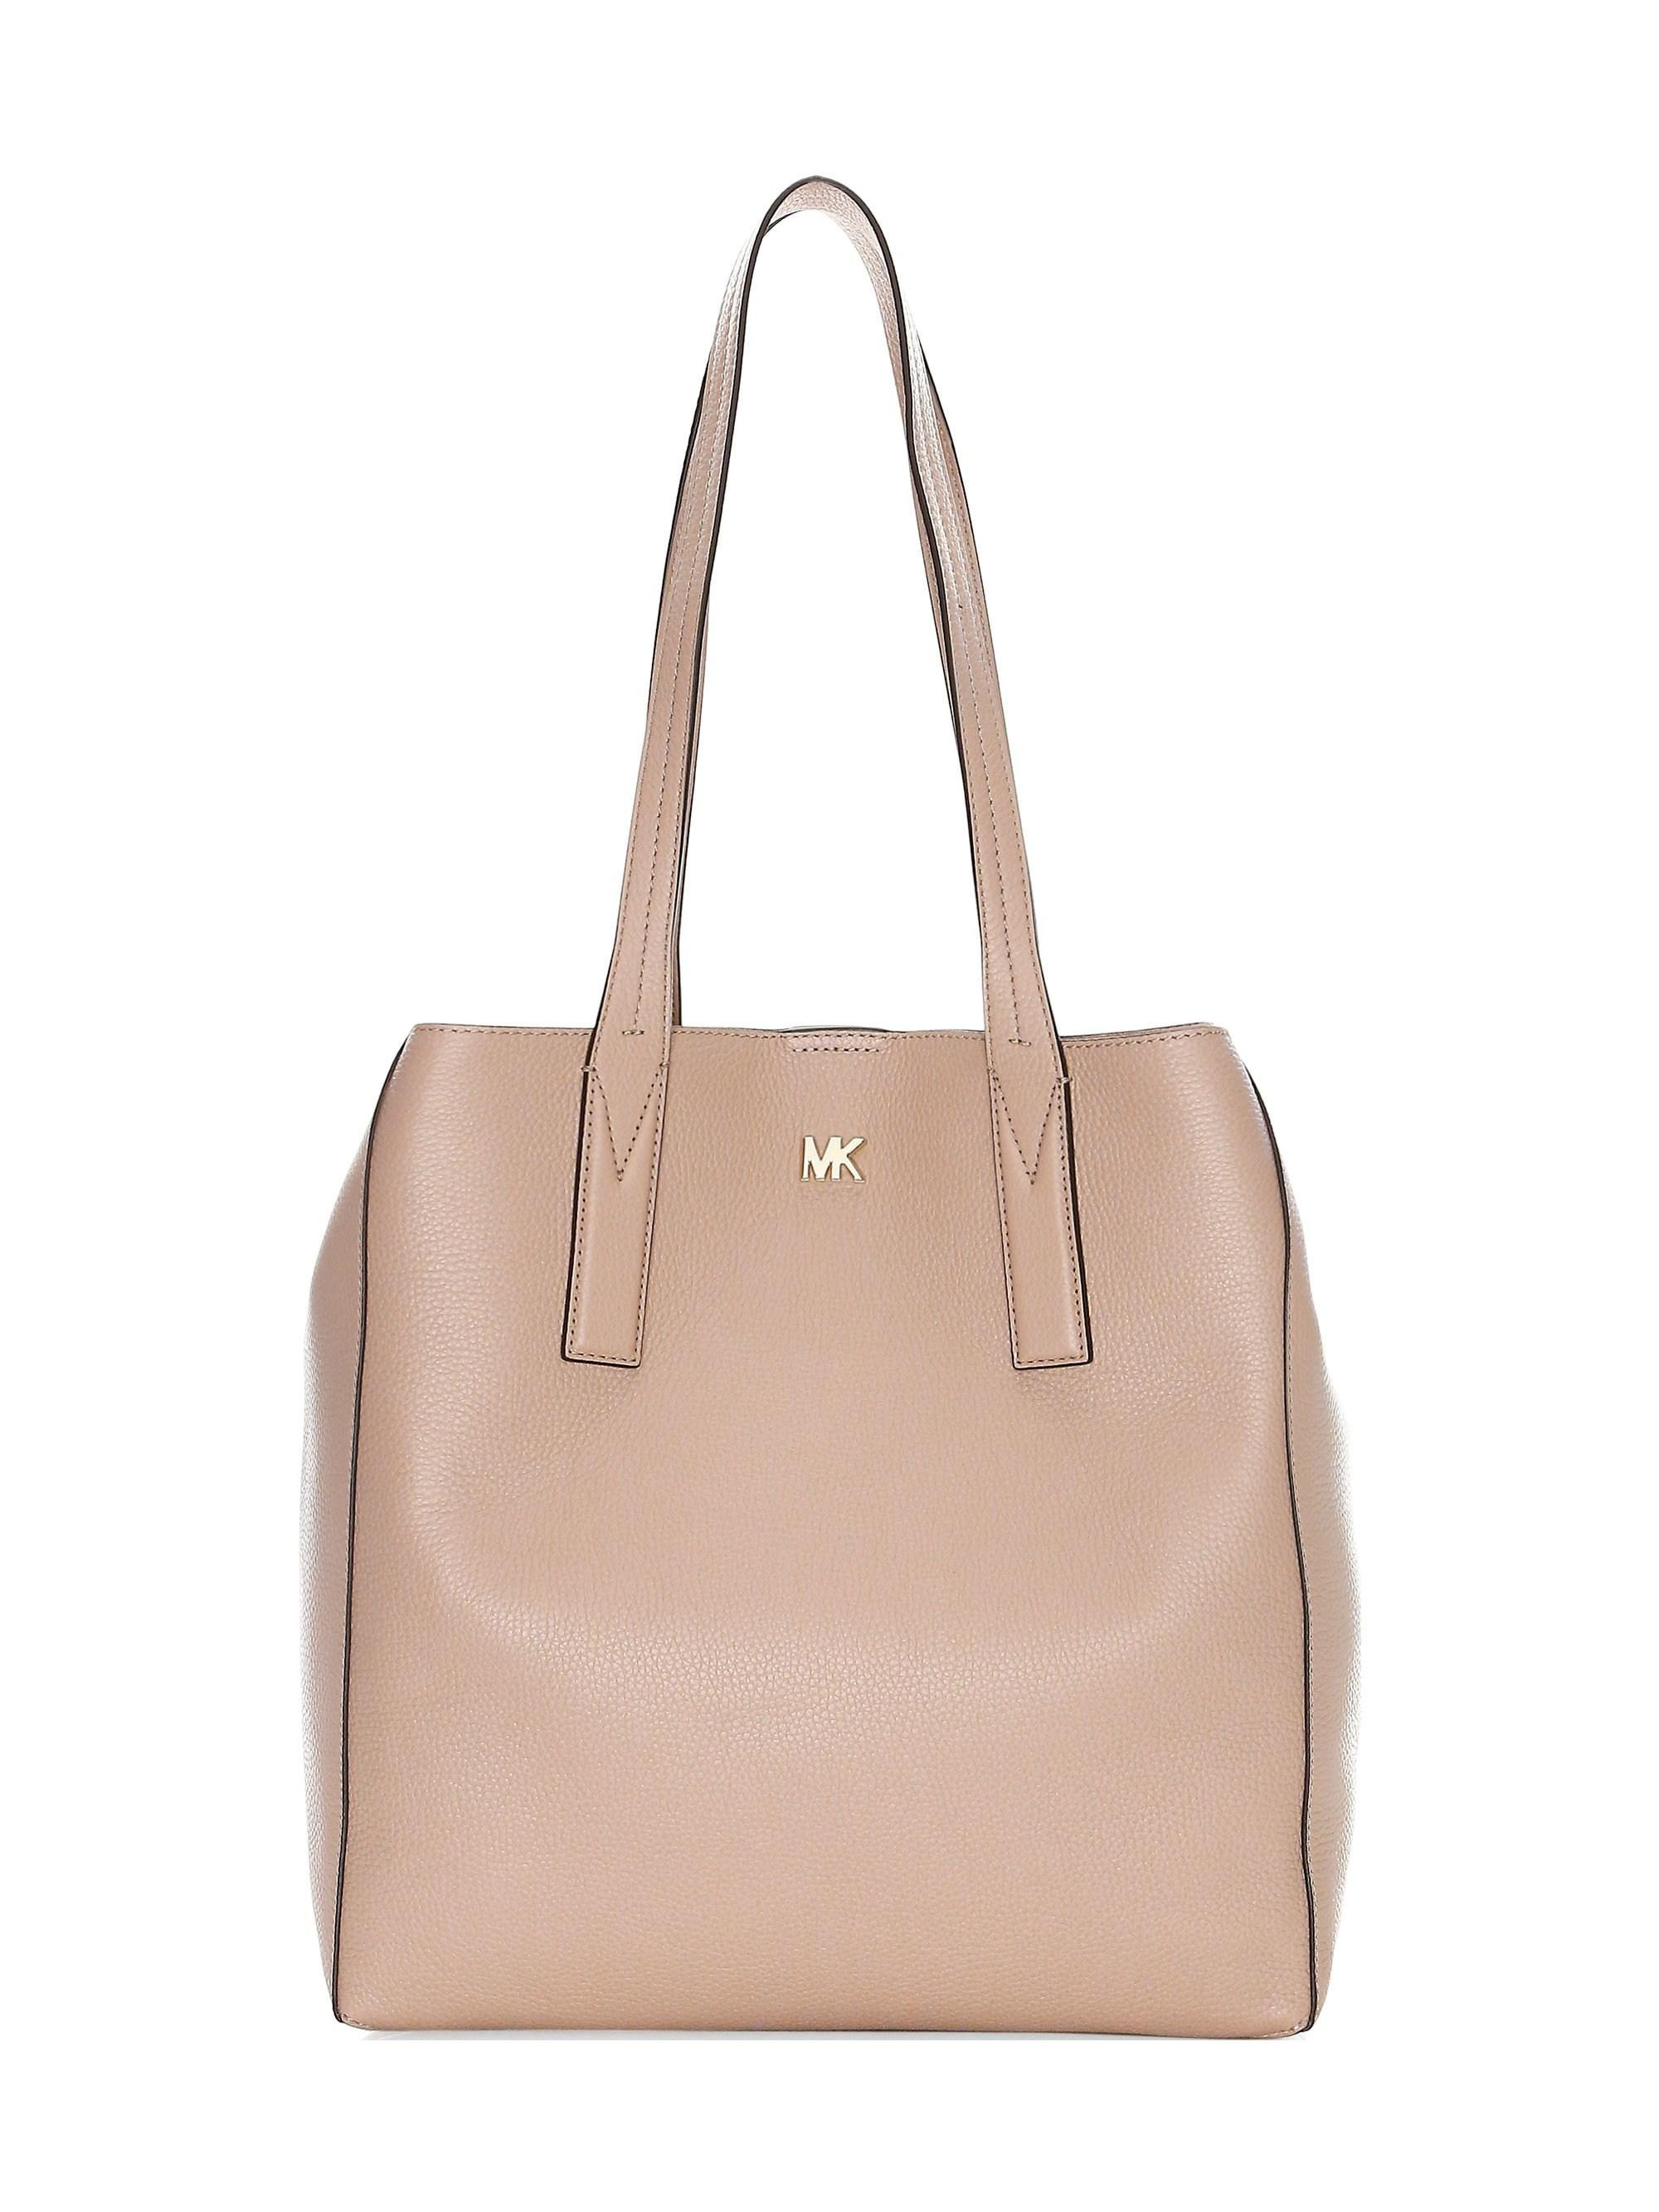 51270505b865 Gallery. Previously sold at: Saks Fifth Avenue · Women's Net Bags Women's  Michael Kors ...